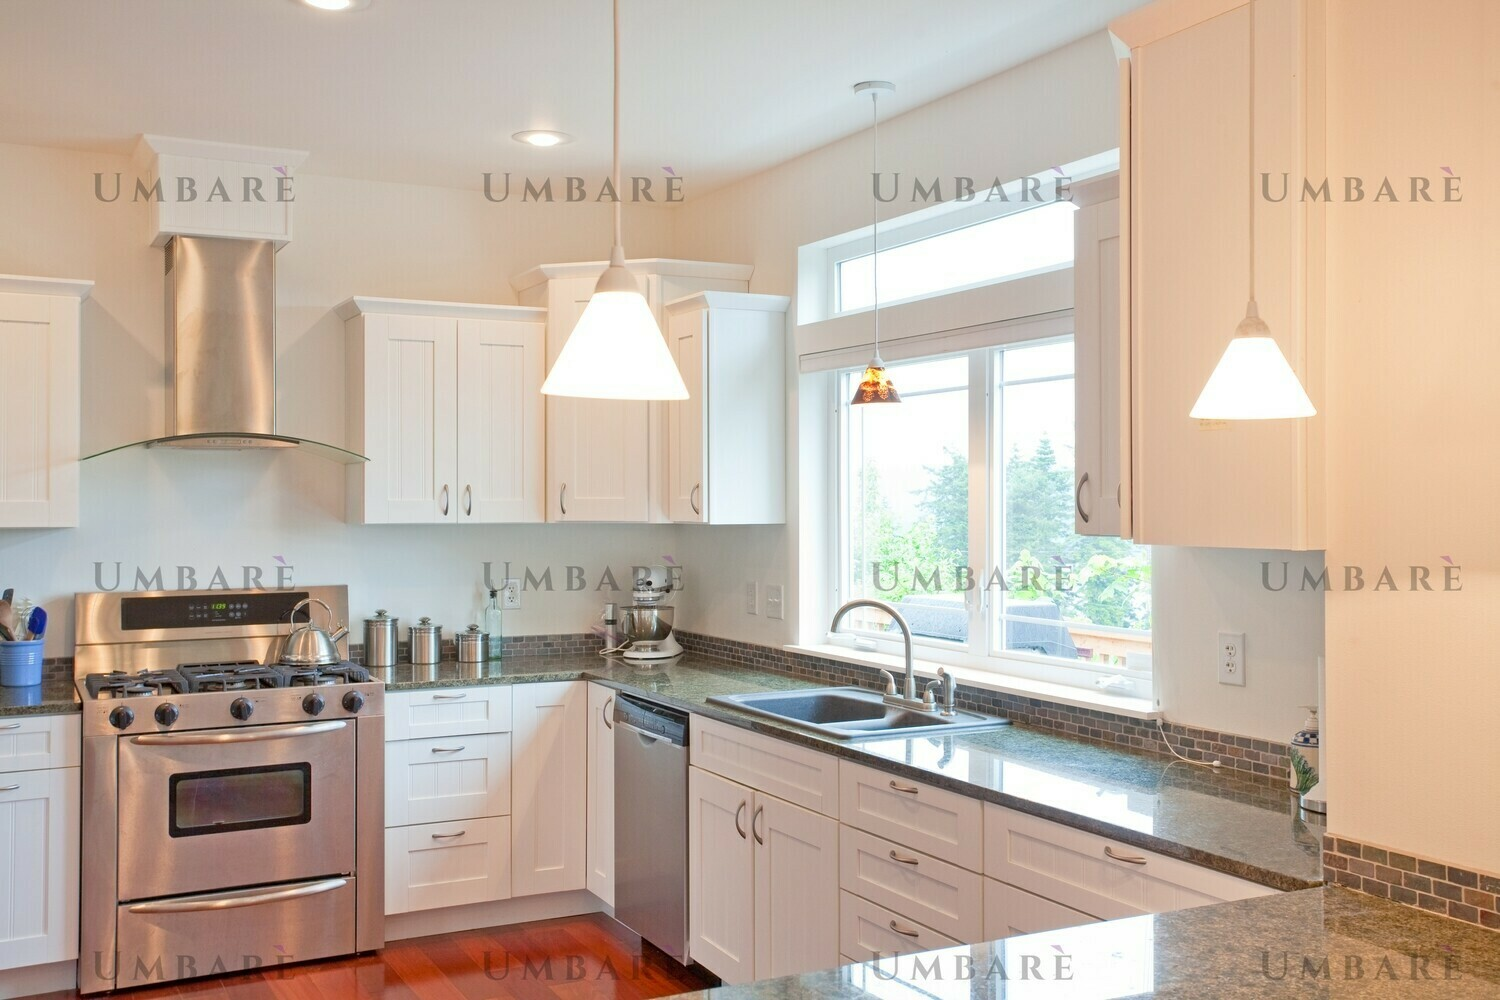 Umbarè Basics Kitchen Remodeling Package